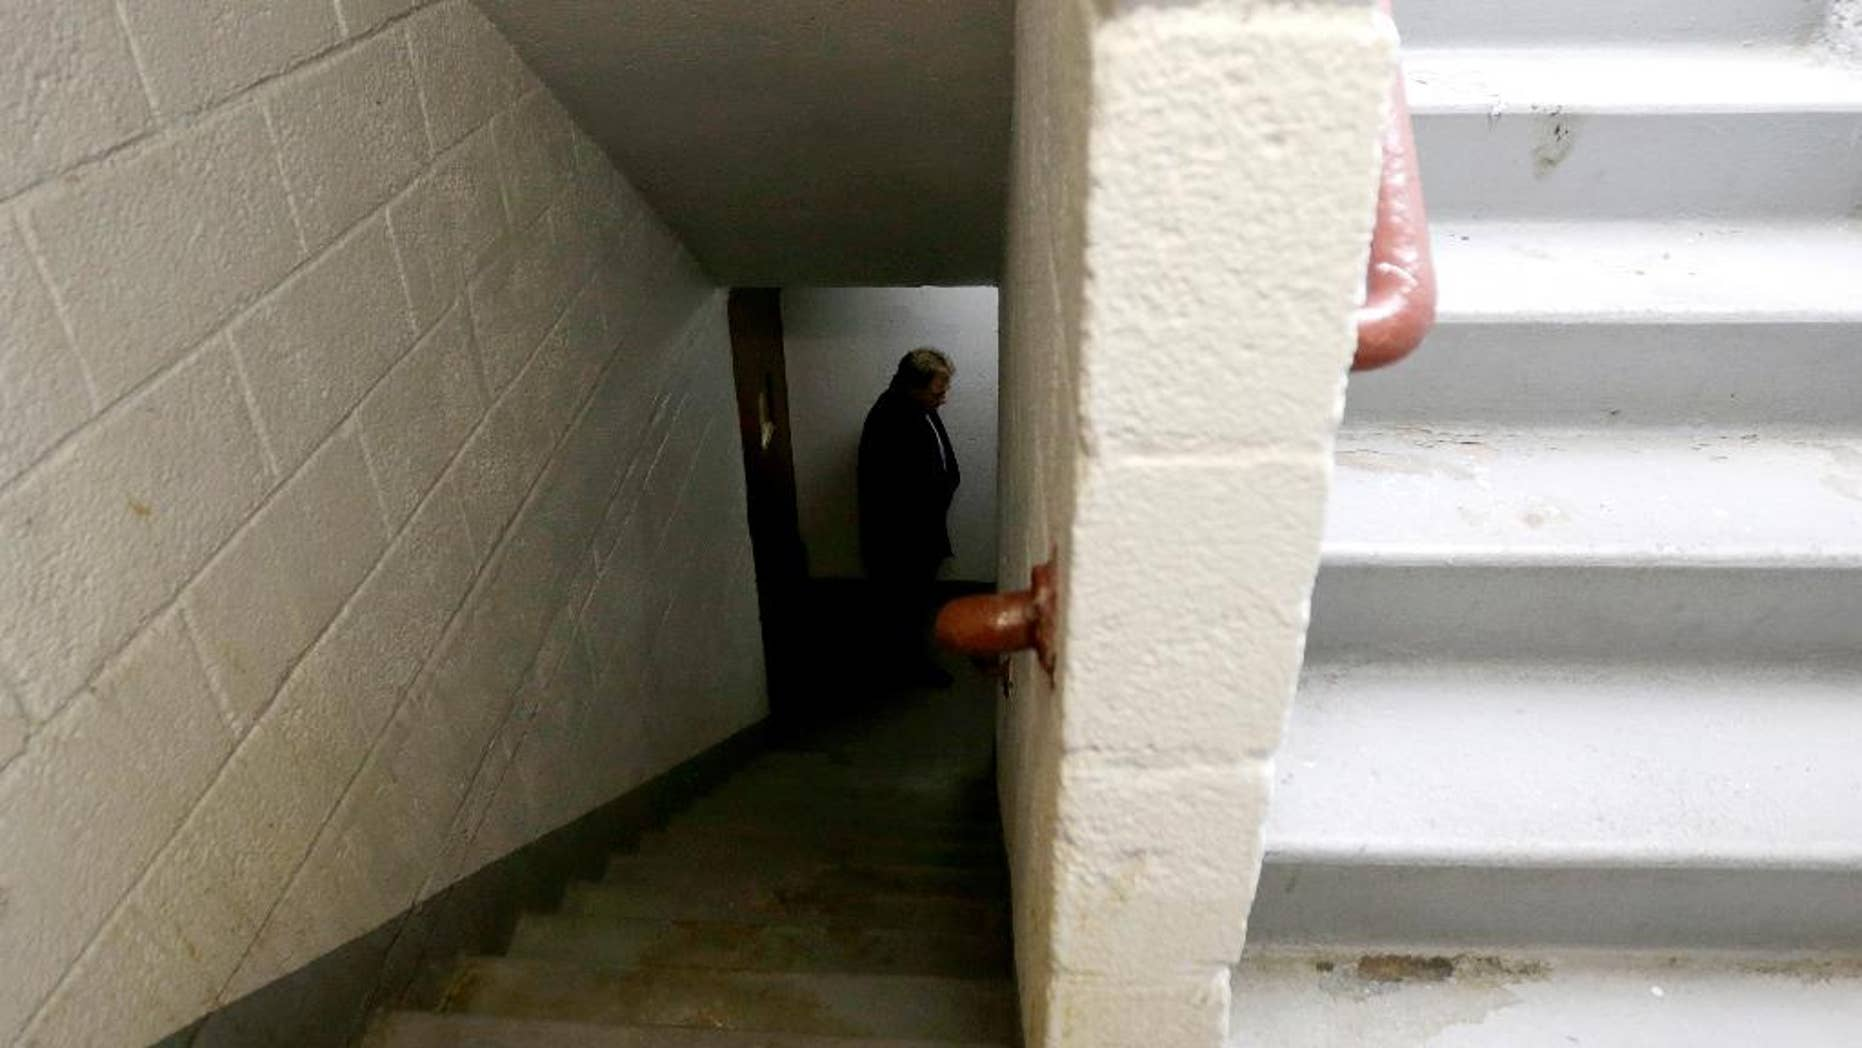 FILE - In this Nov. 21, 2014, file photo, a man who identified himself as a detective with the district attorney's office inspects a stairwell at the Louis Pink Houses public housing complex in Brooklyn borough of New York. Officer Peter Liang who fired into the darkened stairwell, accidentally killing Akai Gurley who had been waiting for an elevator, has been indicted in his death, a lawyer said Tuesday, Feb. 10, 2015. Liang will appear in court Wednesday according to an attorney representing Gurley's family, but the charges against Liang weren't immediately clear. (AP Photo/Julio Cortez, File)